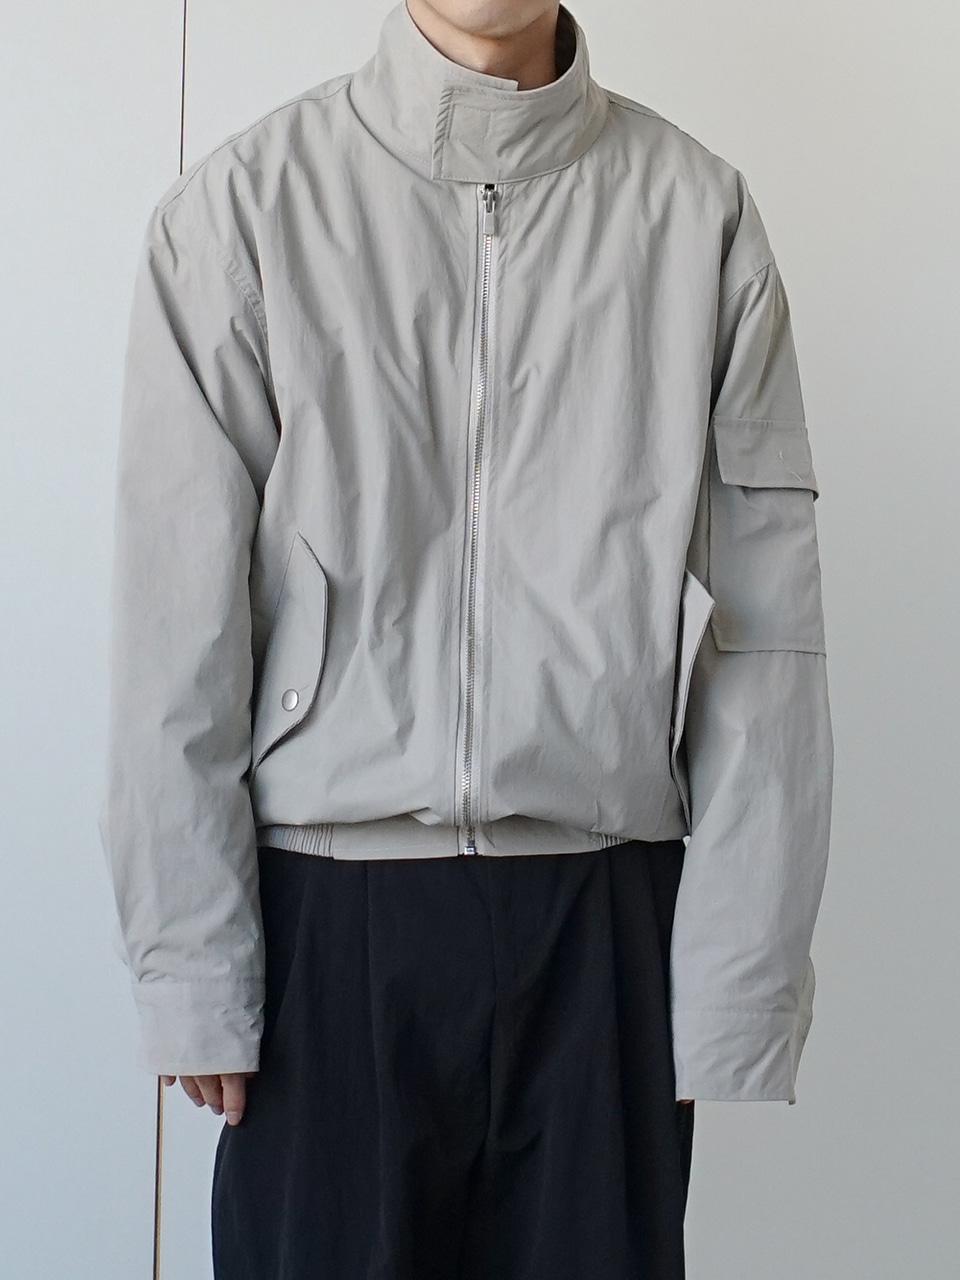 New Vibe A-1 Jacket (3color)